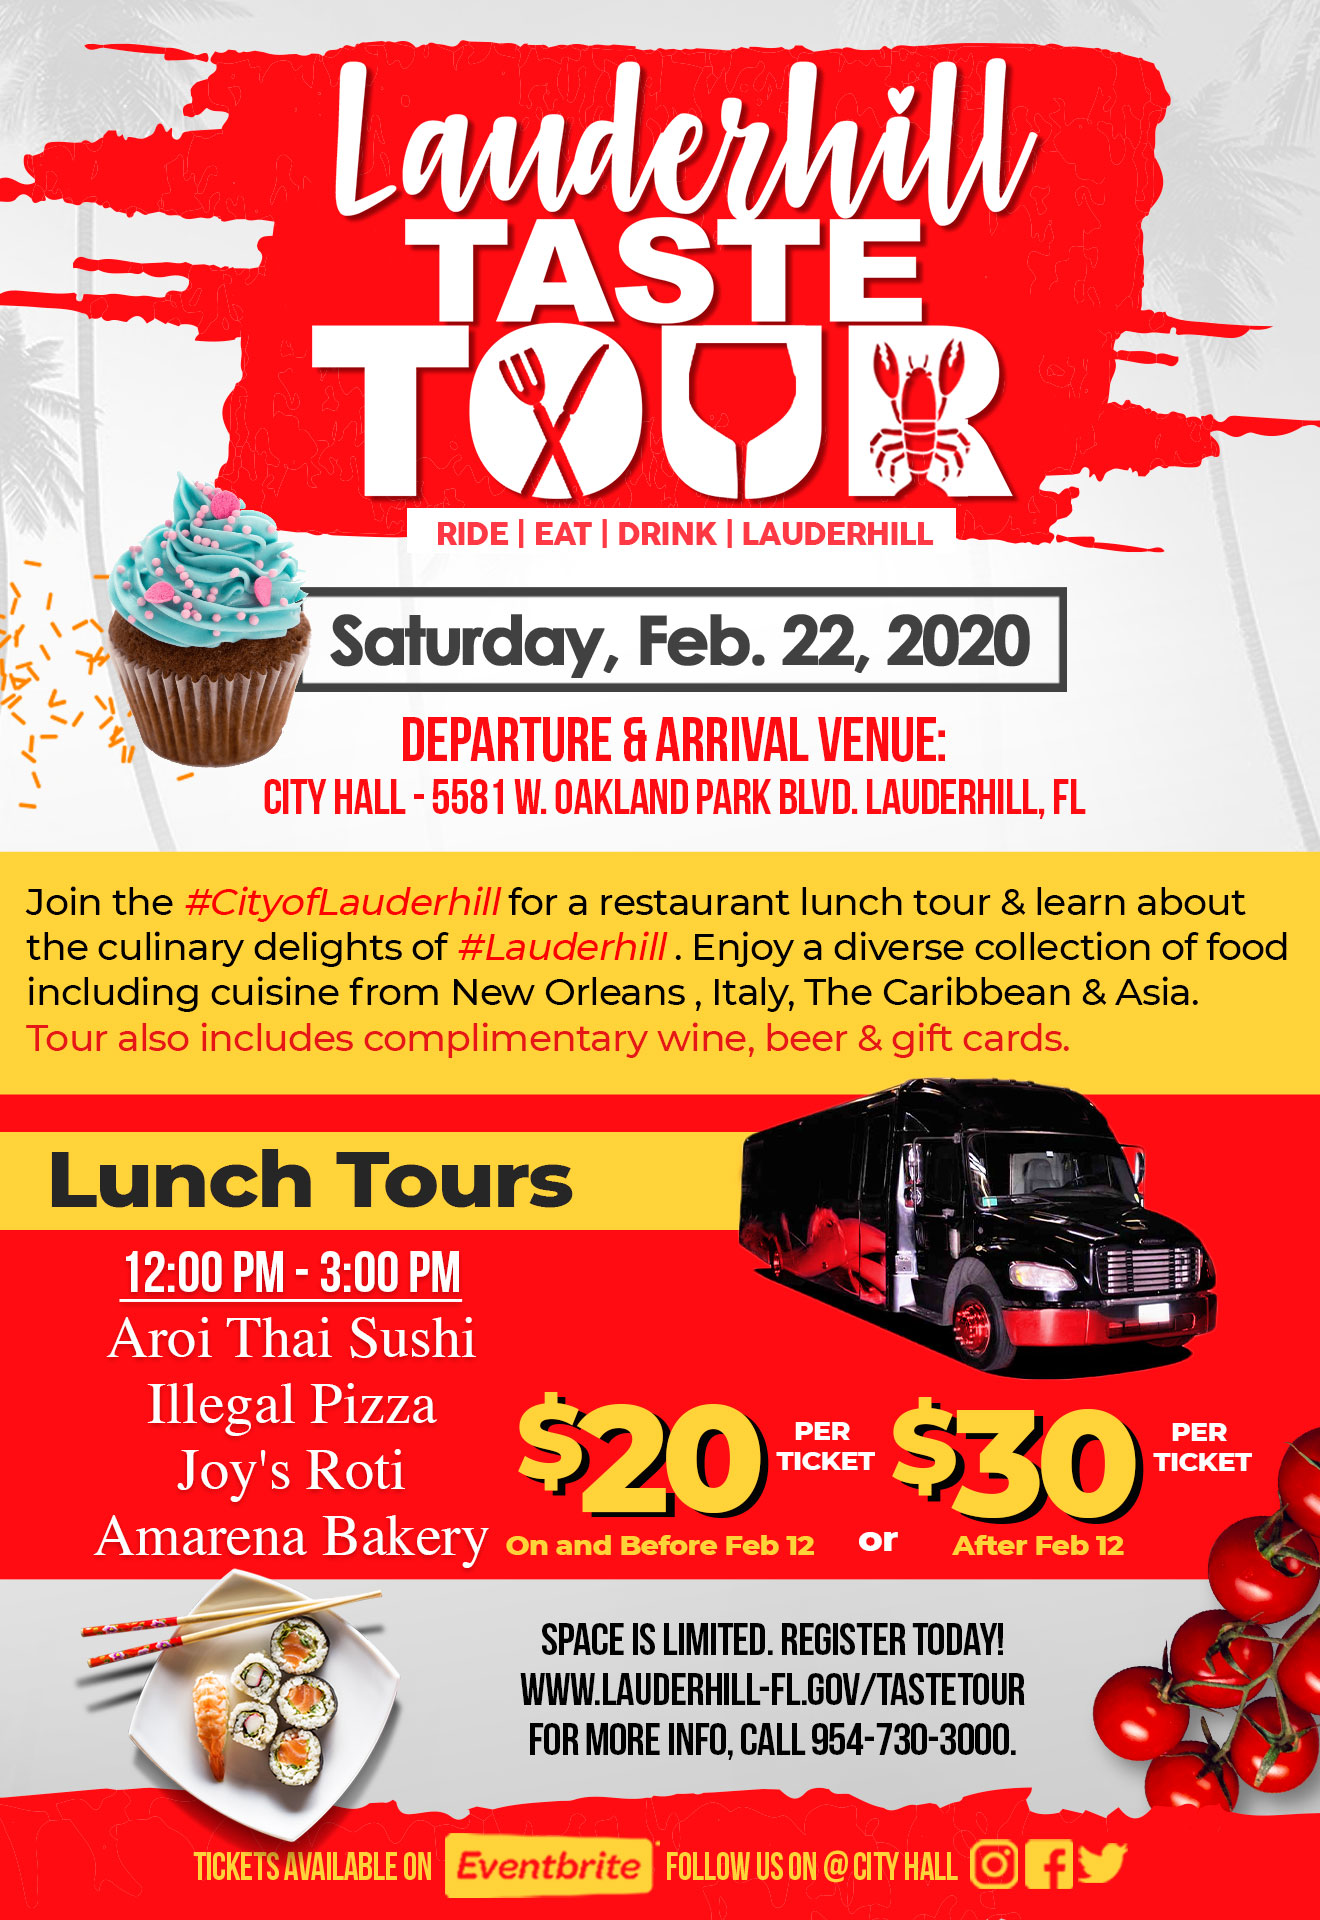 2020 Lauderhill Taste Tour Flyer - Lunch